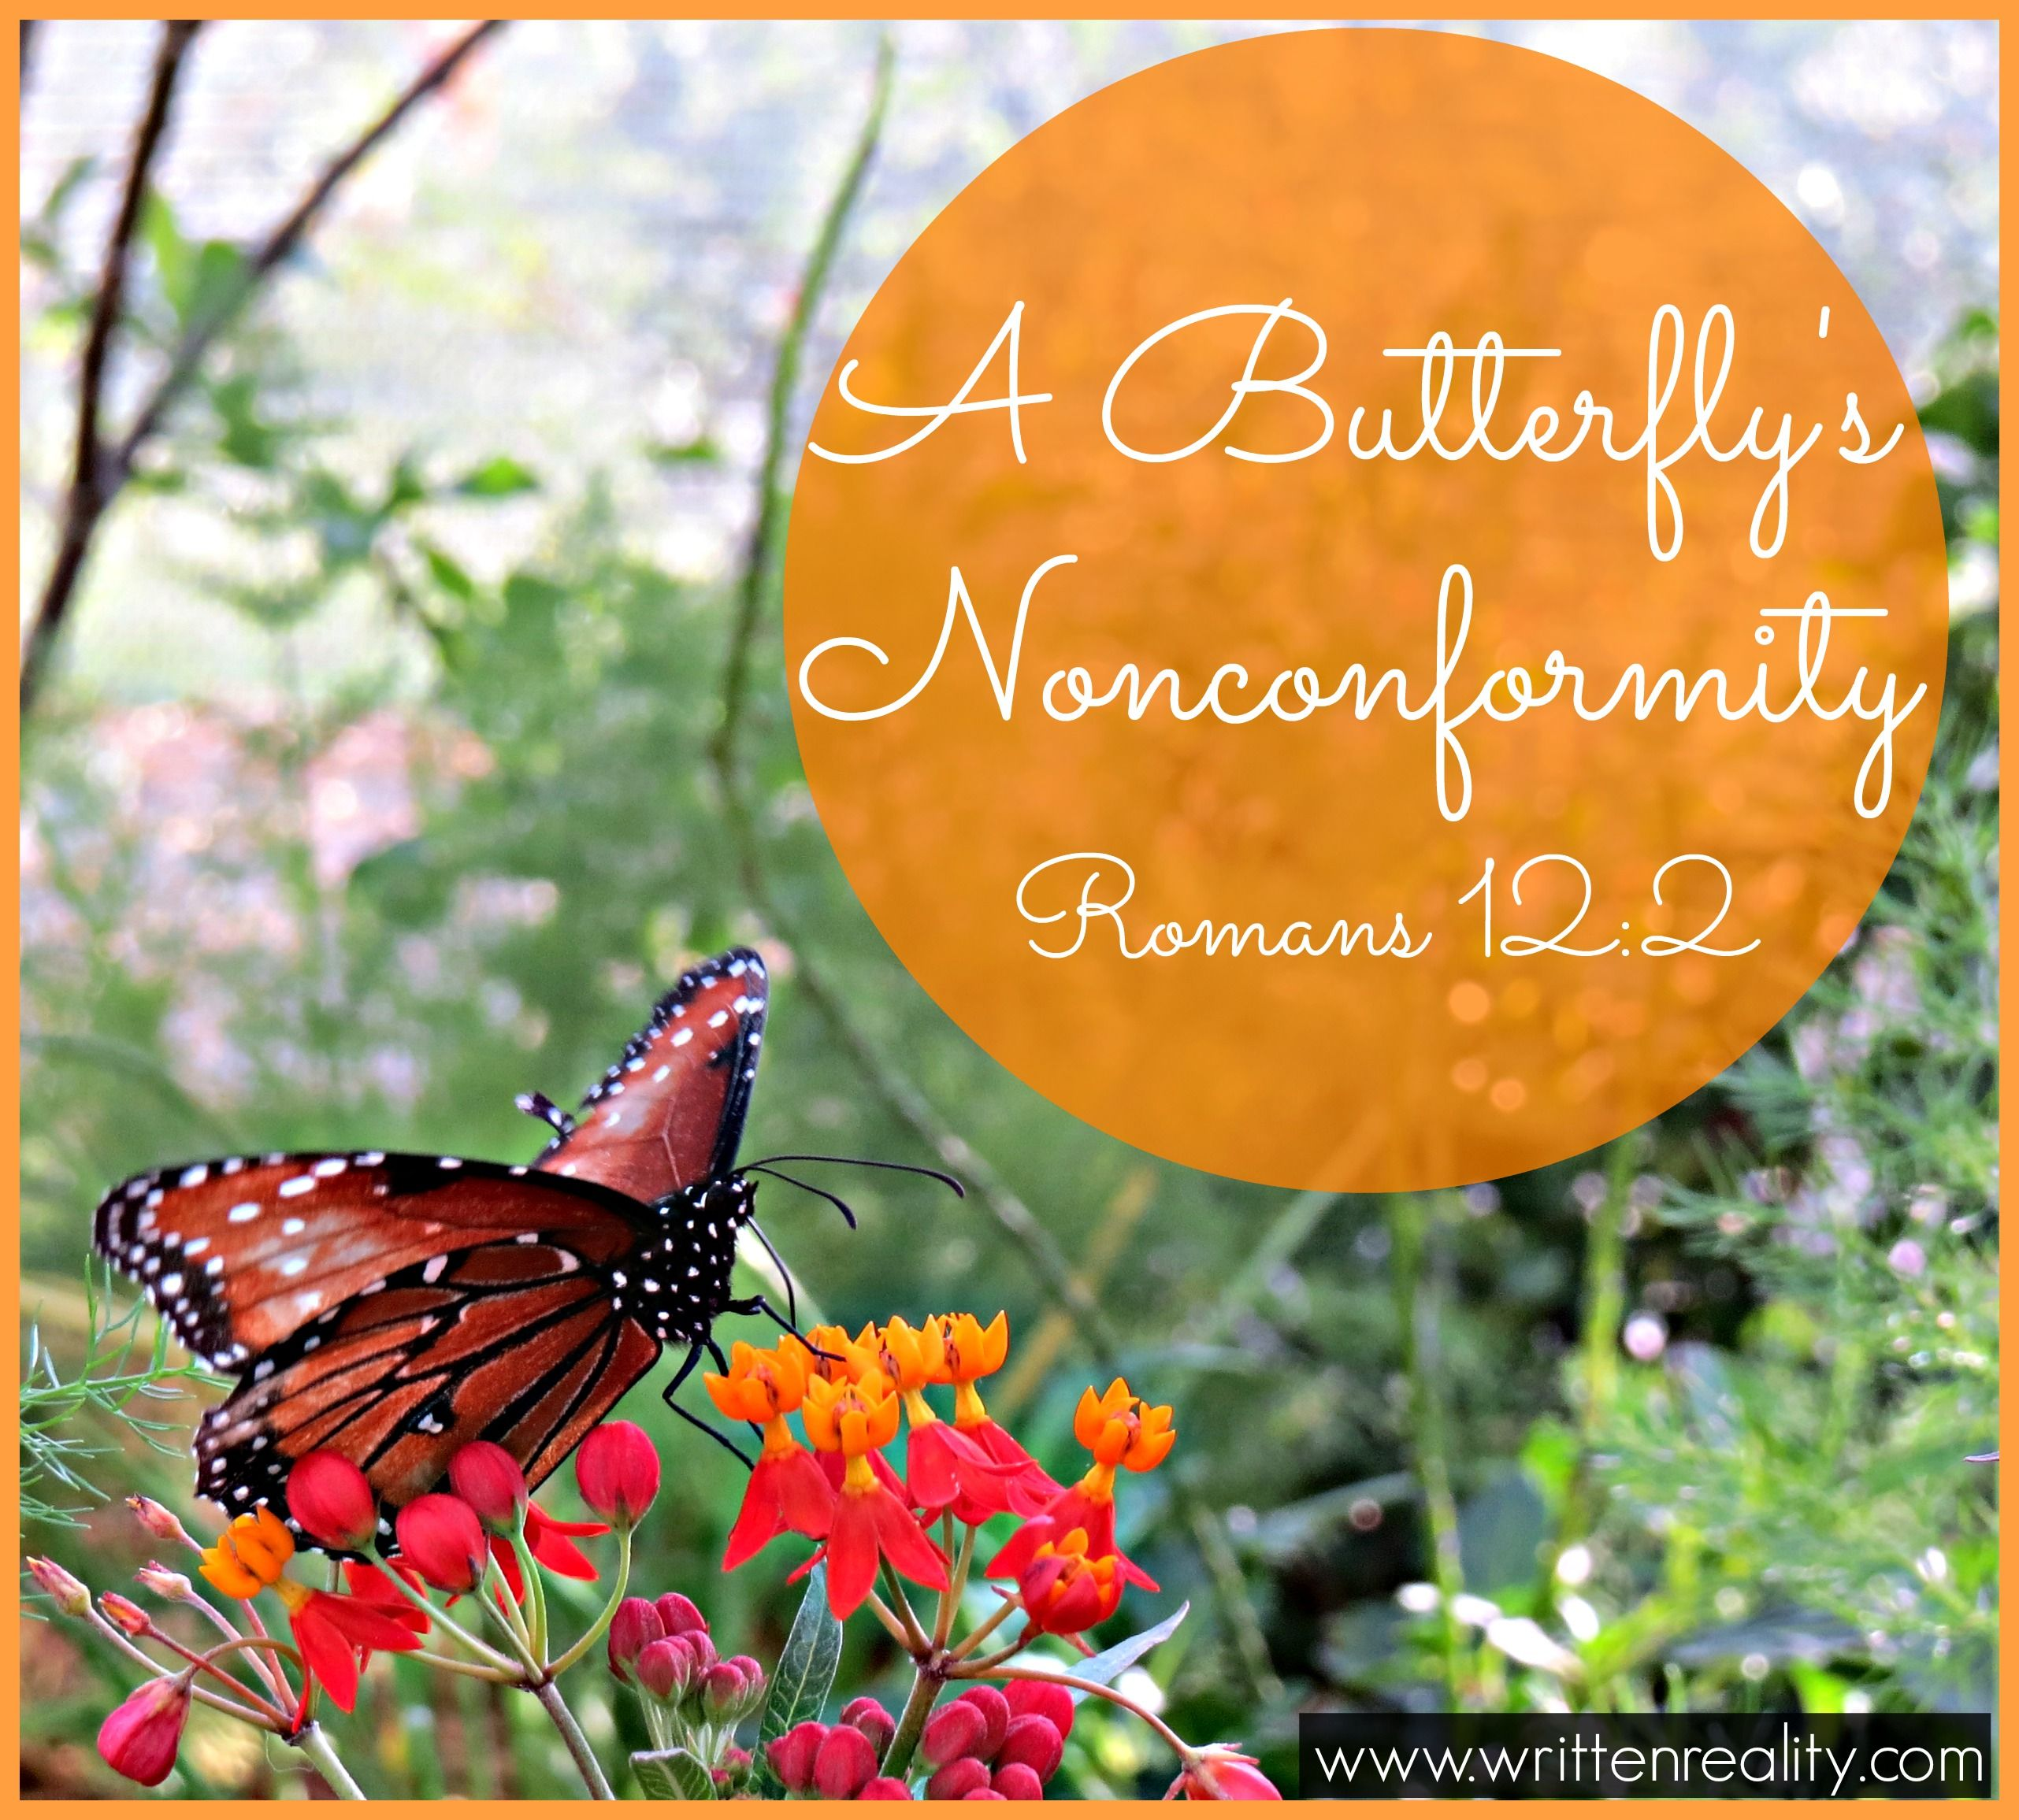 Peer Pressure Quotes A Butterfly's Nonconformity  Peer Pressure And Bible